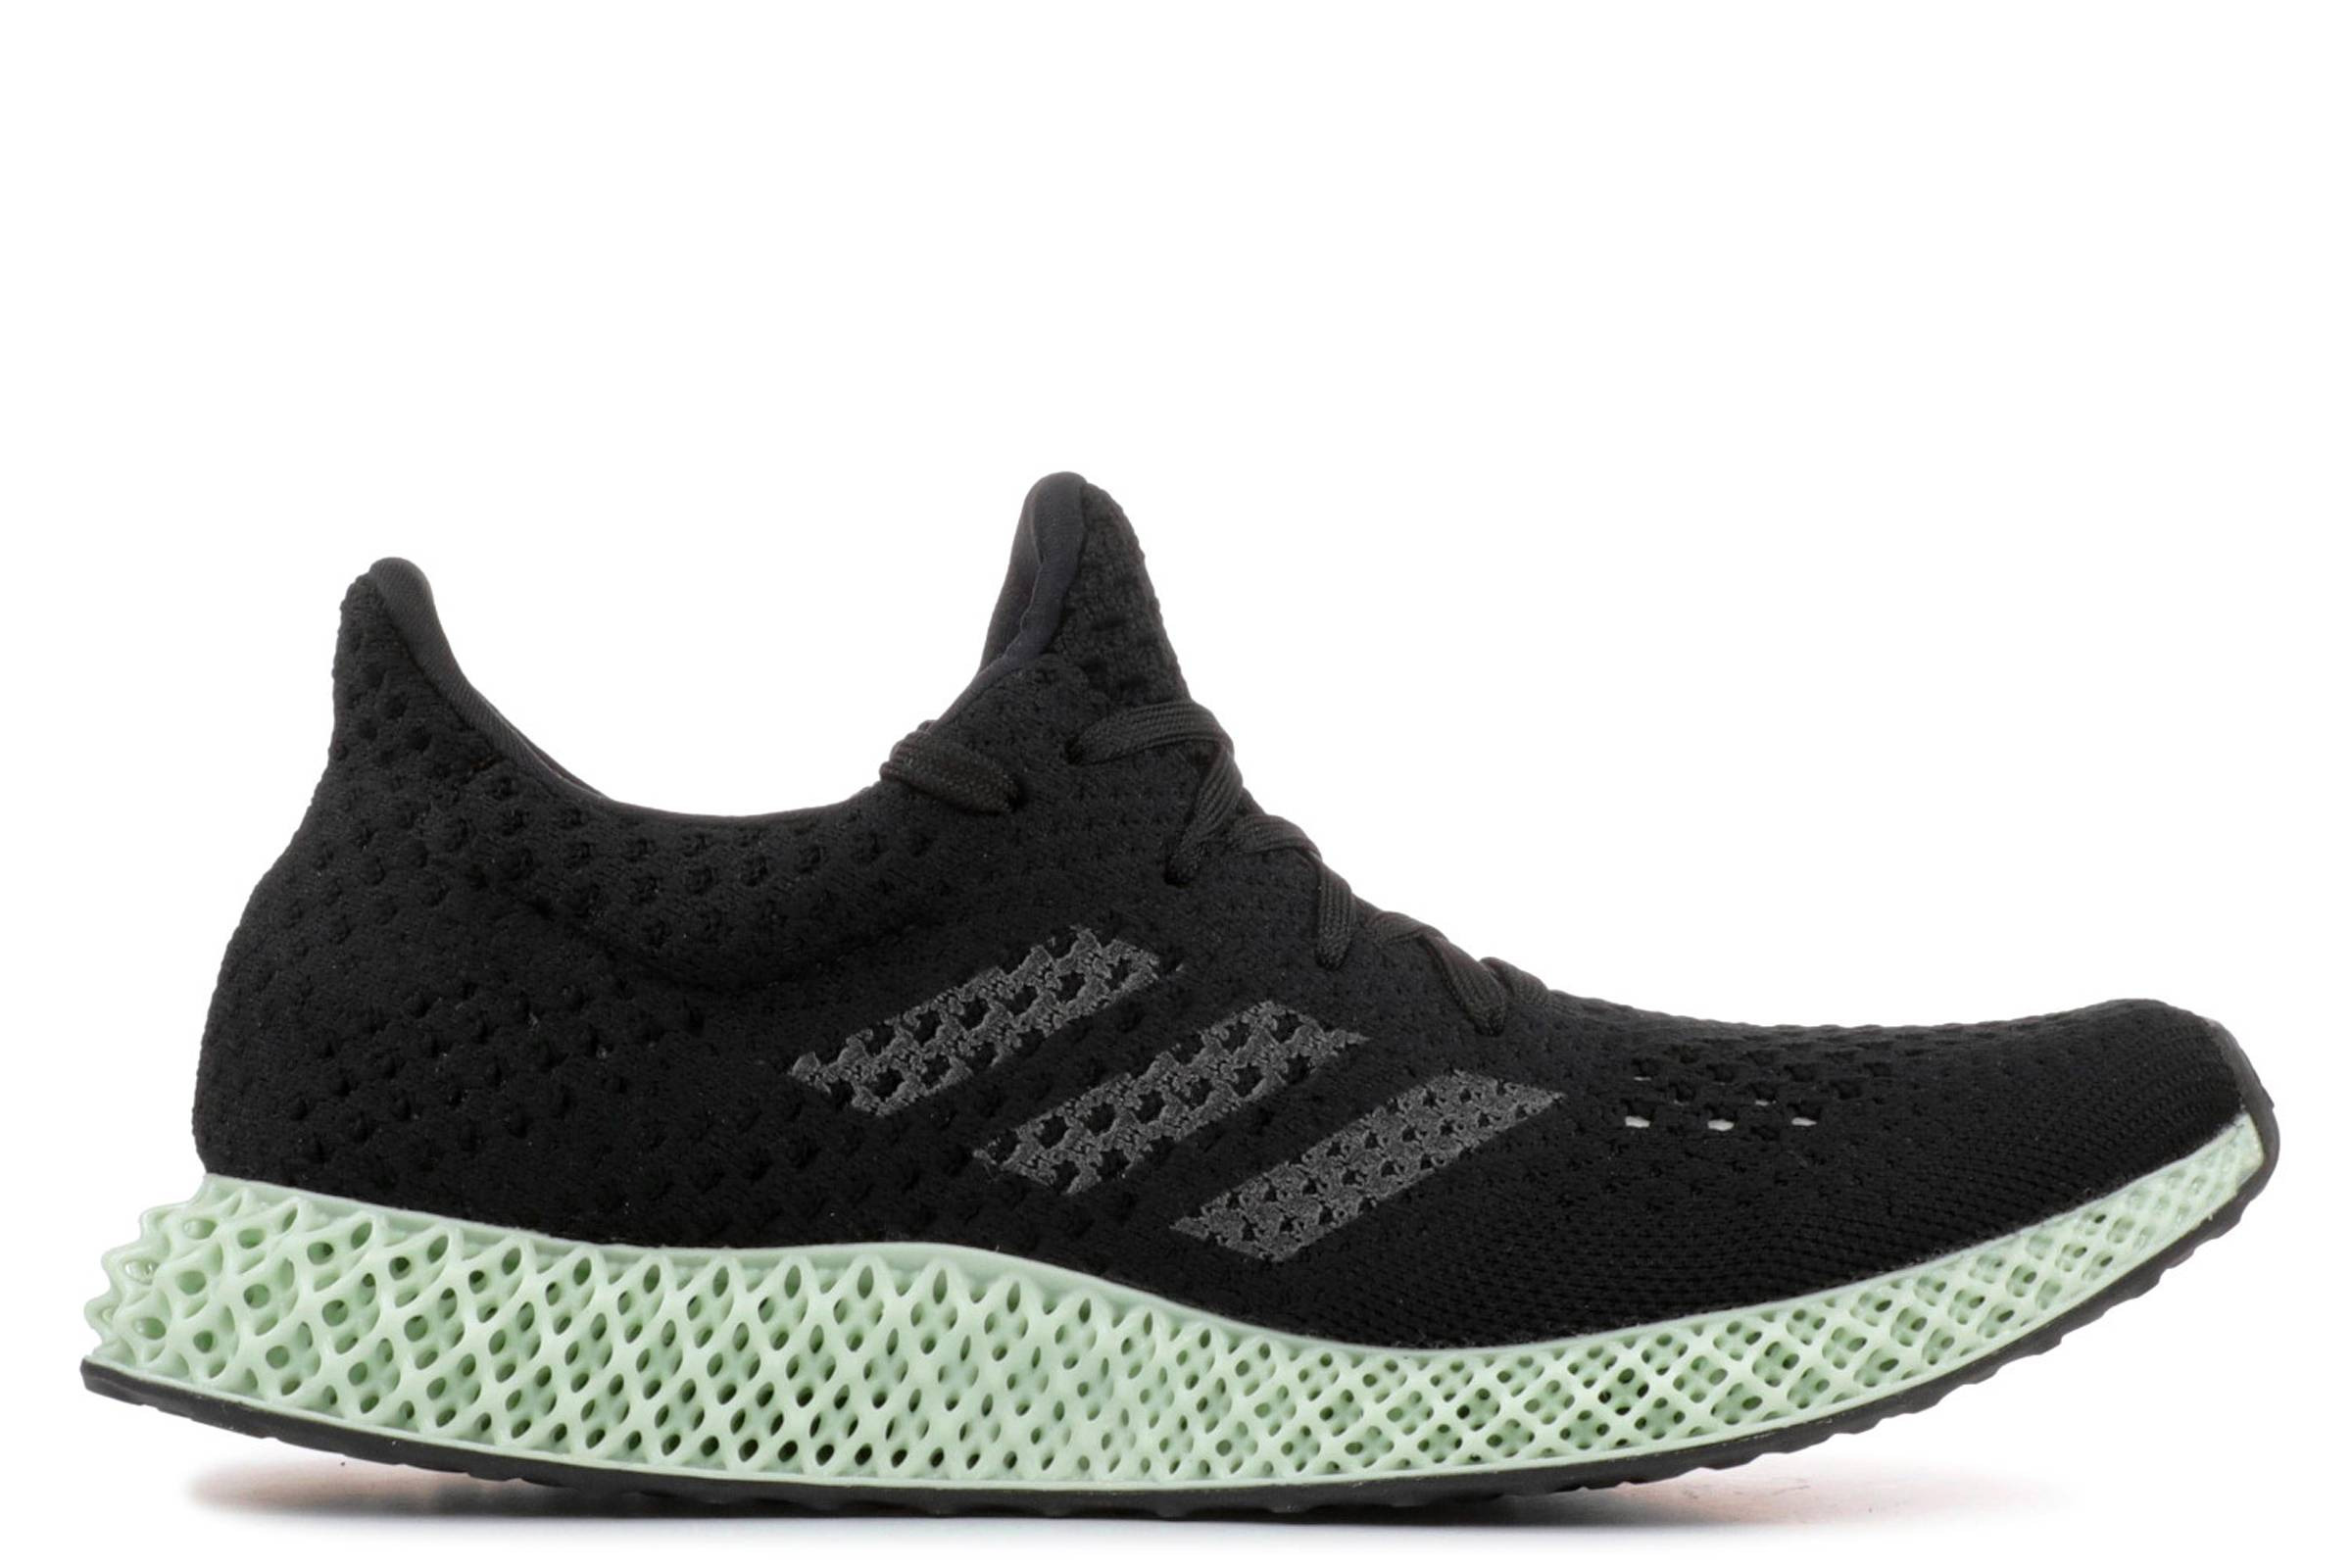 adidas Futurecraft 4D Ash Green (2018)